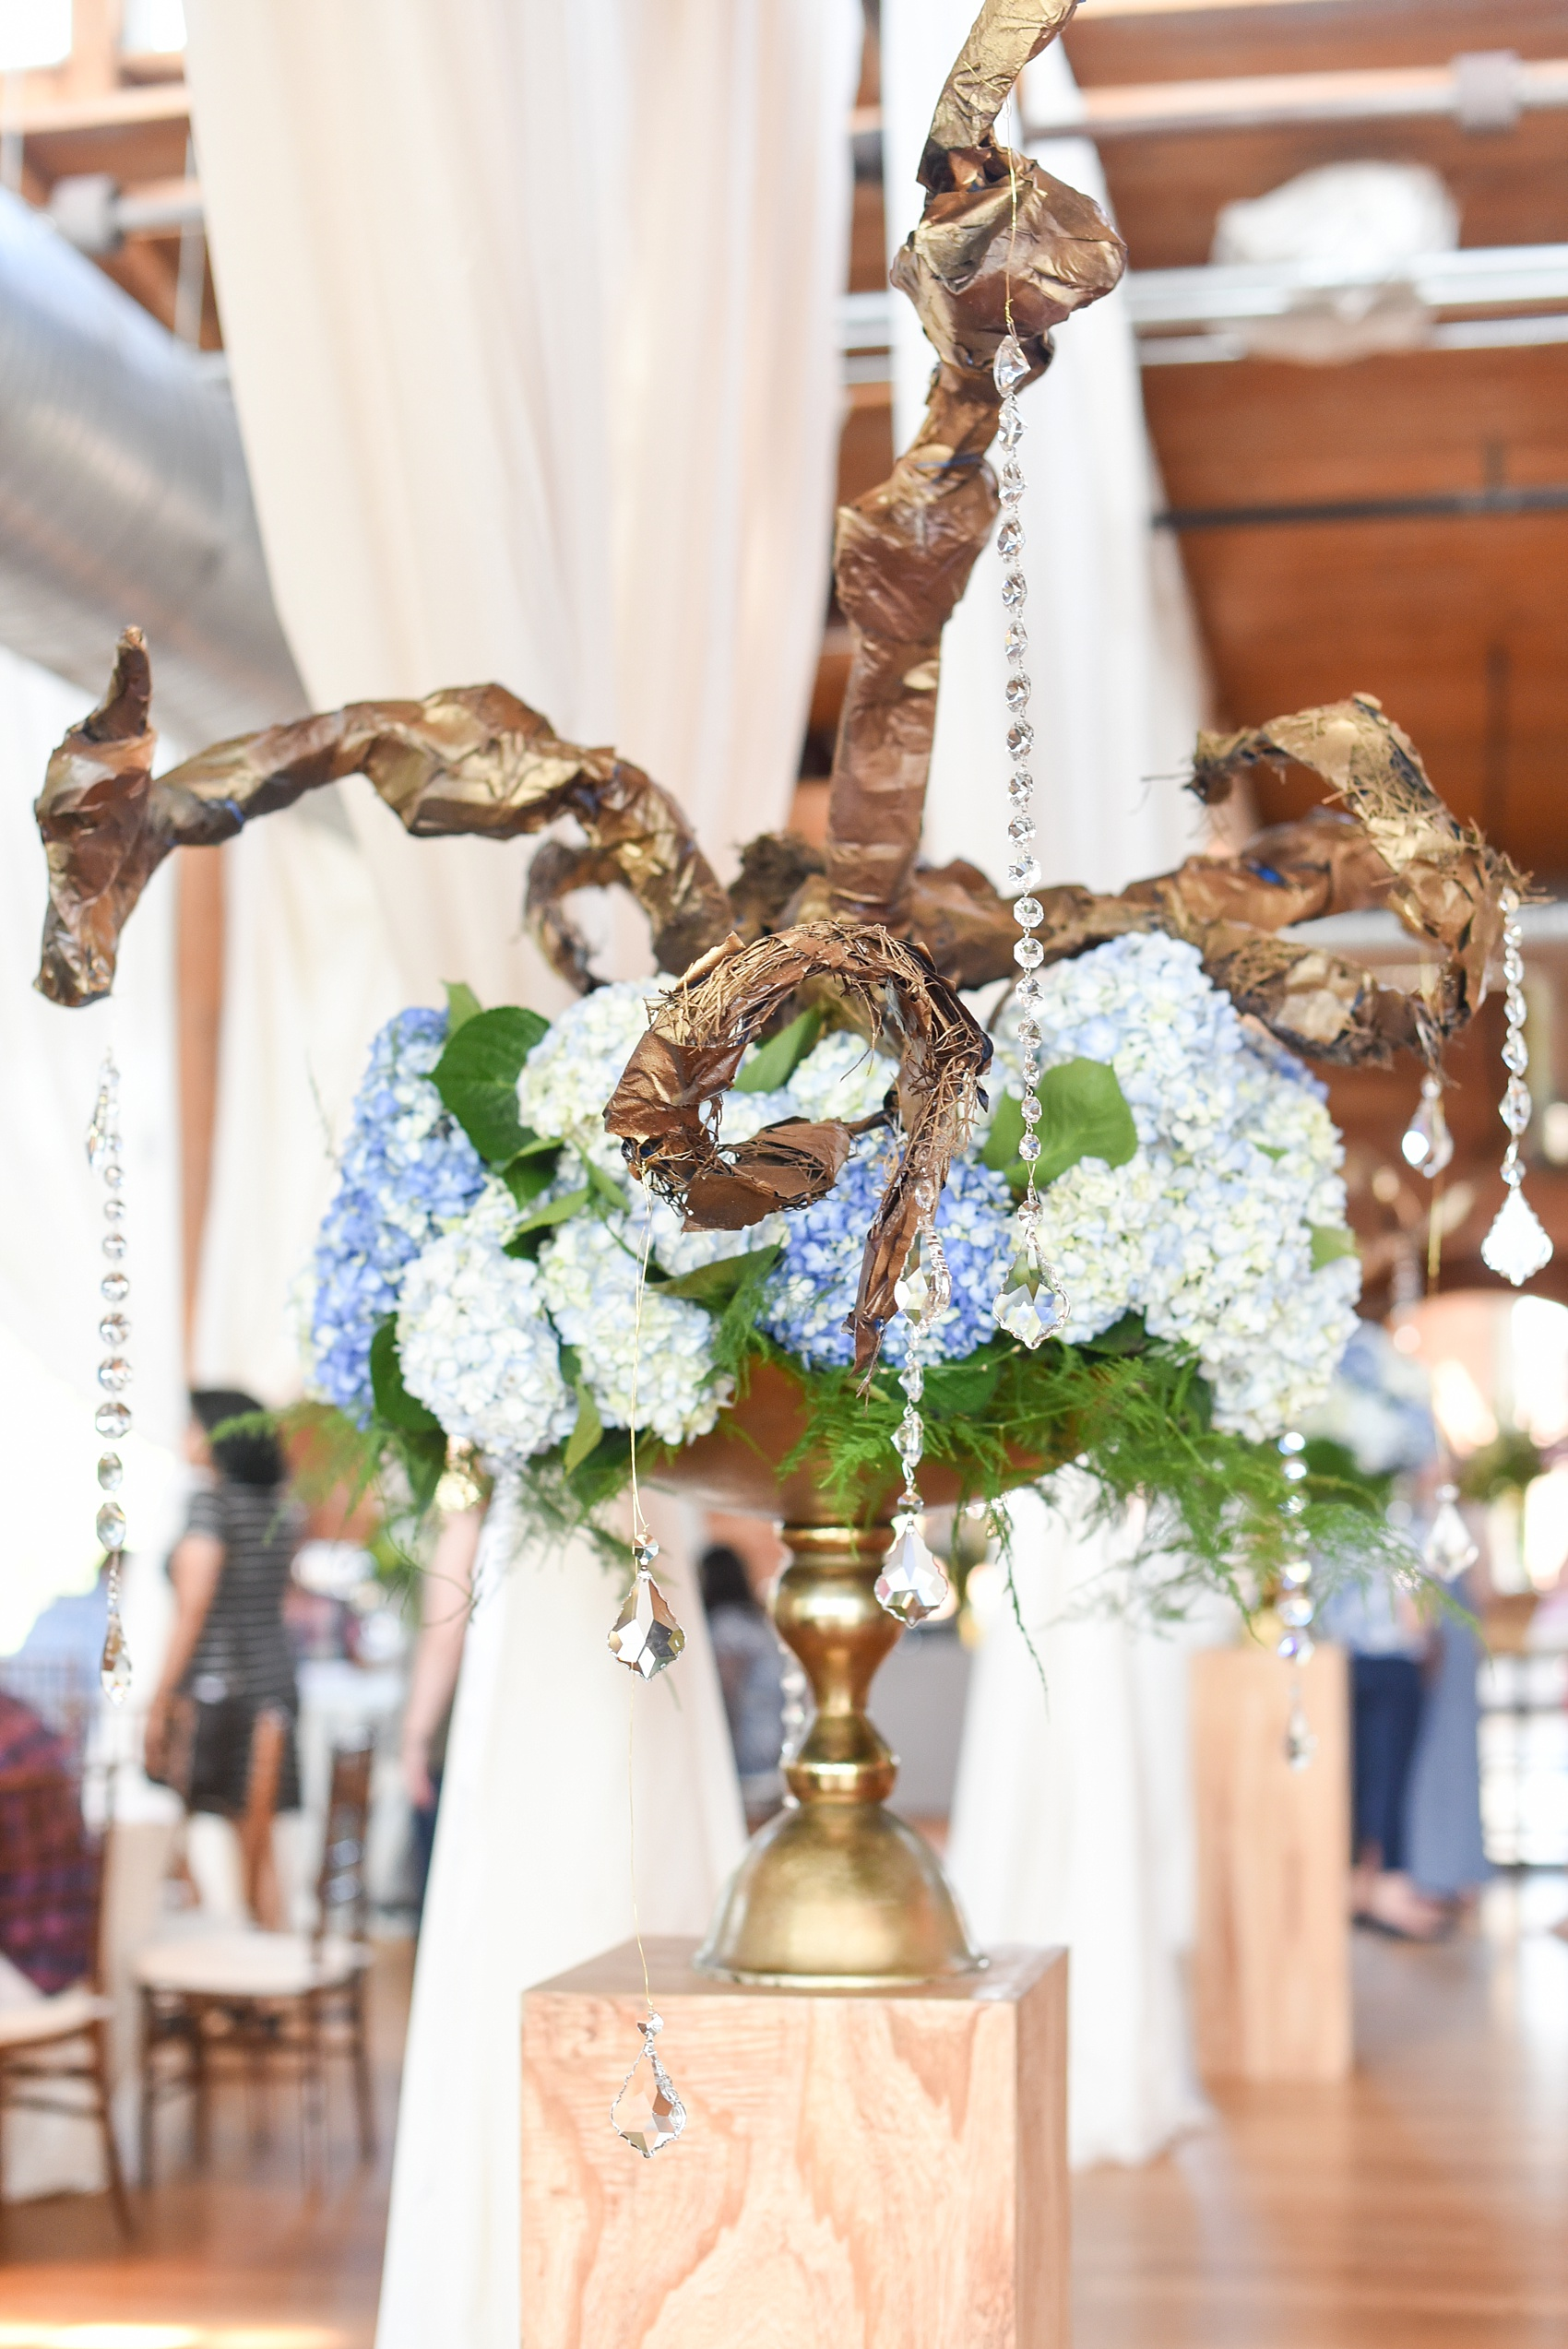 Mikkel Paige Photography photos from The Cotton Room wedding venue in Durham, NC. A beautiful floral centerpiece with greenery and blue hydrangea and crystals hanging off.